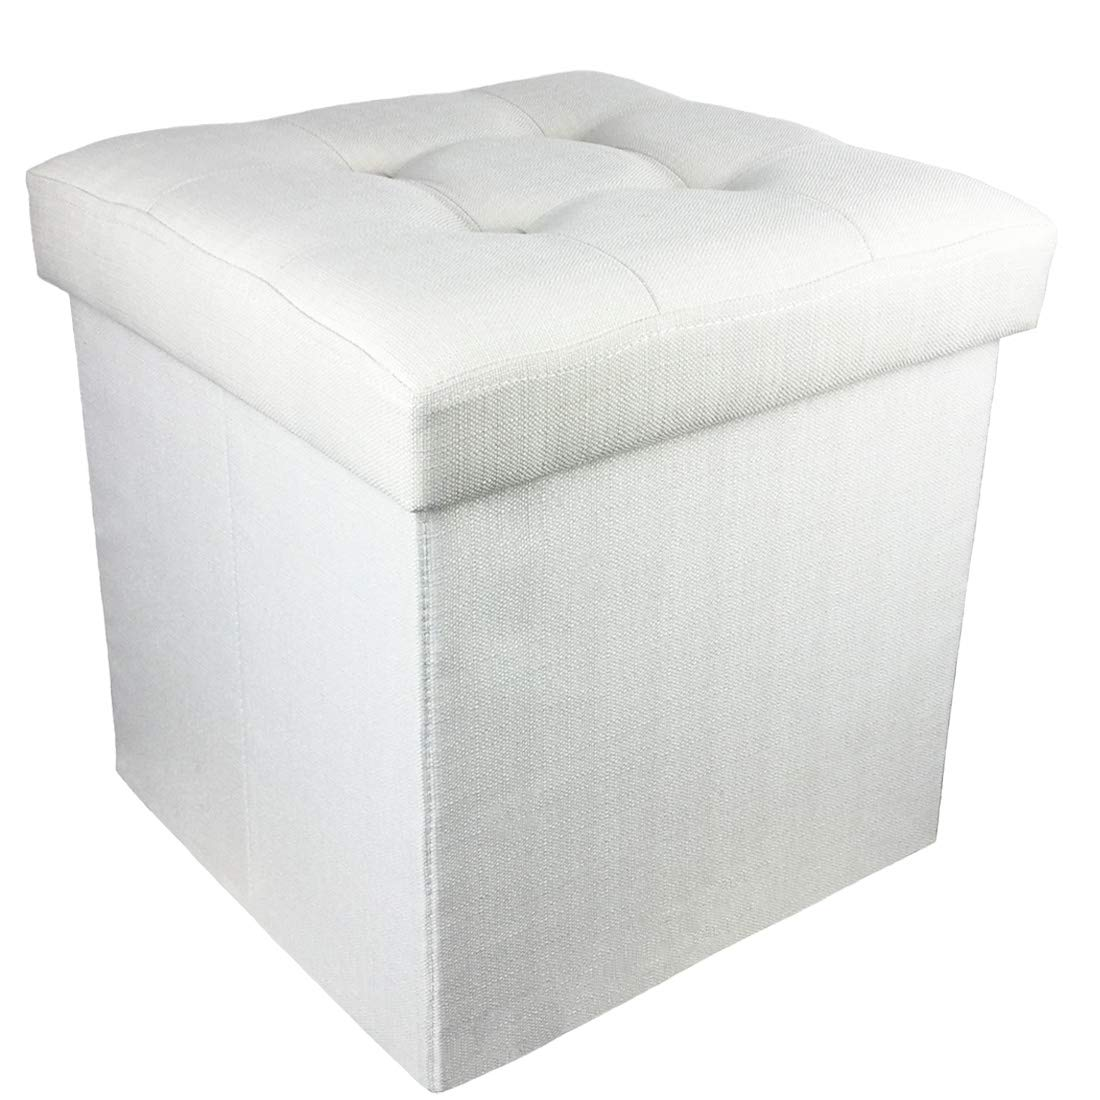 YIFONTIN Storage Ottoman Cube Foldable Foot Stool Basket Collapsible Bench Seat Footstool with Lid 15X15X15 inches for Entryway Bedside Reading Room, Linen Ivory.